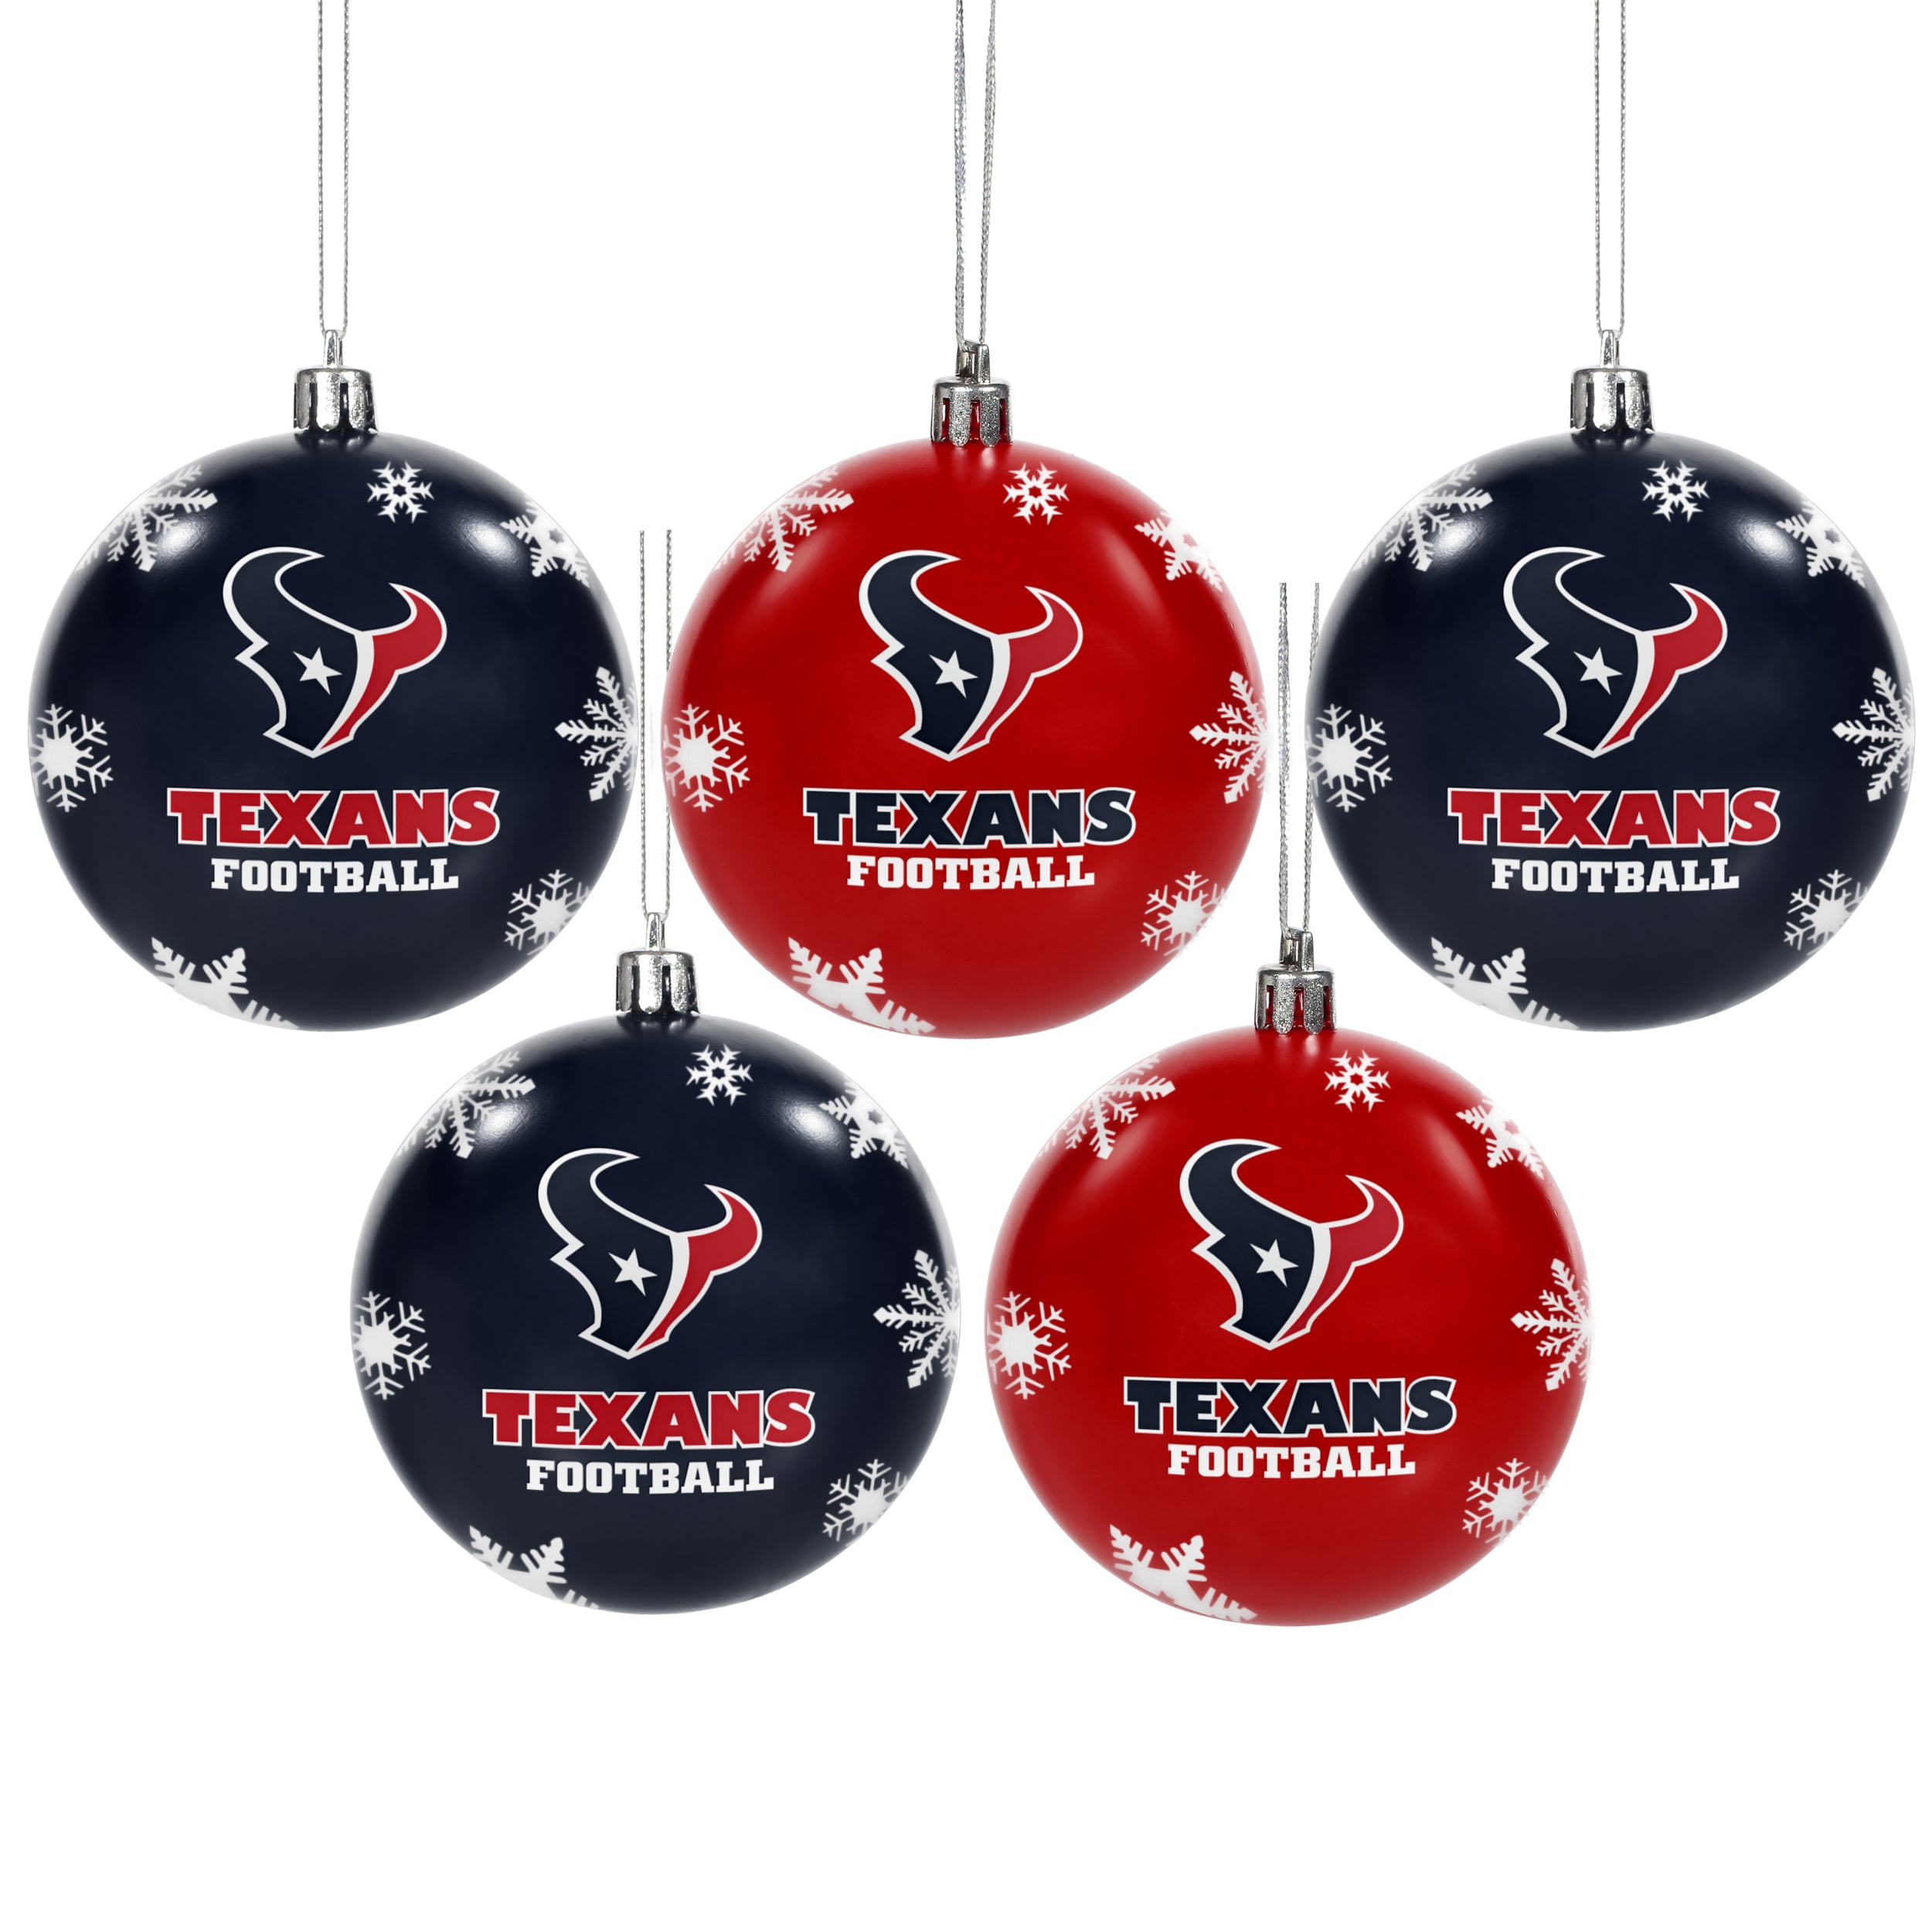 Shop Houston Texans 2016 NFL Shatterproof Ball Ornaments - Free ...